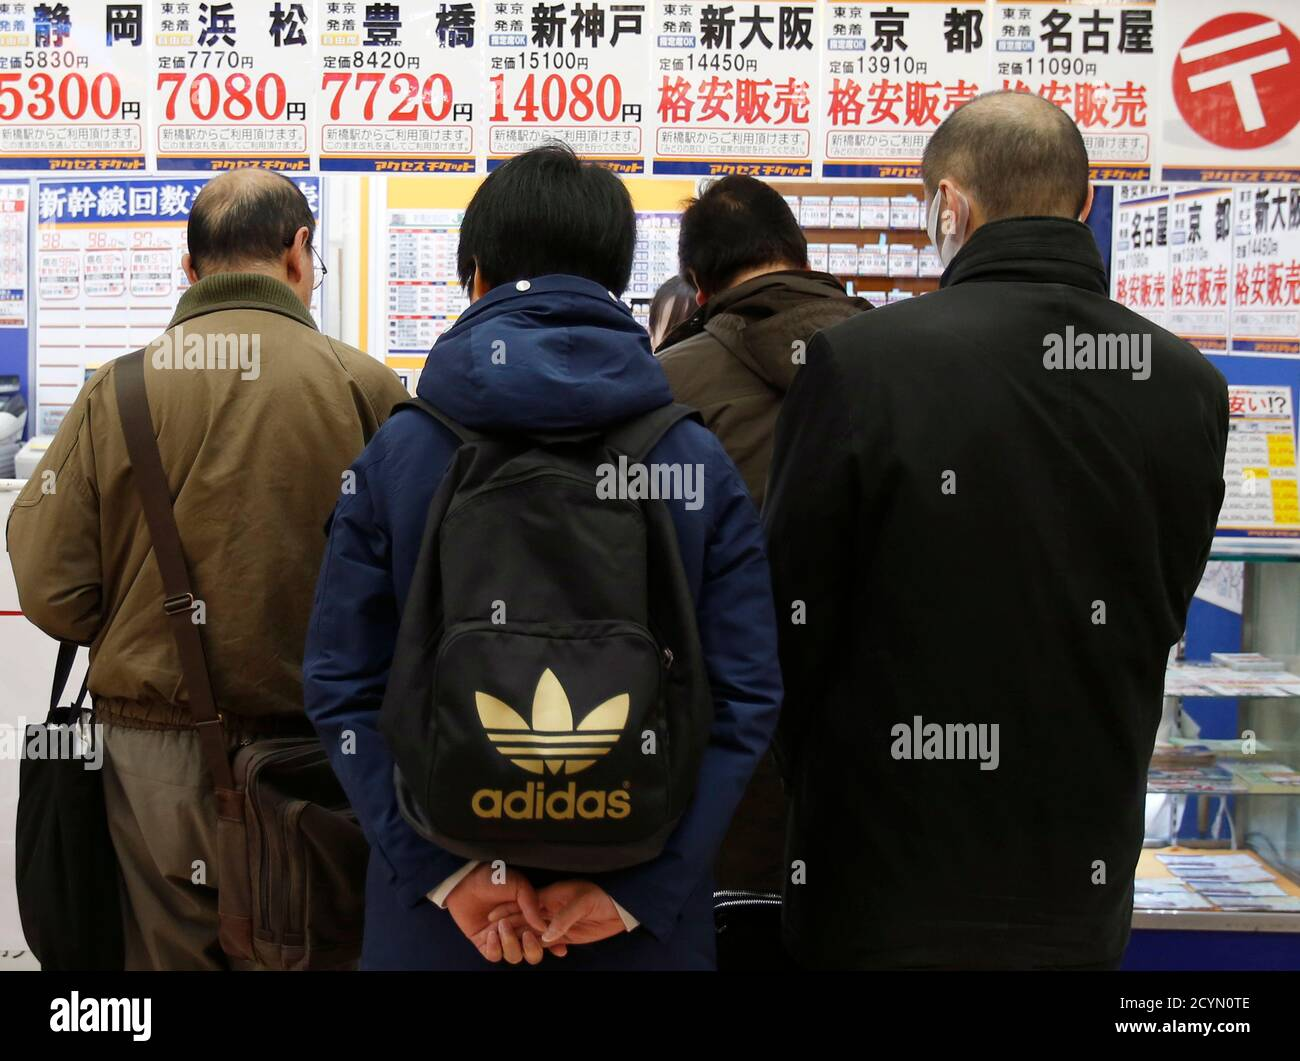 People look at prices at a discount ticket shop in Tokyo January 14, 2015. Japanese Prime Minister Shinzo Abe's cabinet approved on Wednesday a record $812 billion budget for the fiscal year starting on April 1, while cutting new borrowing for a third straight year in a bid to balance growth and fiscal reform. The largest budget item, social welfare spending, will rise 1 trillion yen to a record 31.53 trillion yen. REUTERS/Yuya Shino (JAPAN - Tags: BUSINESS SOCIETY POLITICS) Stock Photo